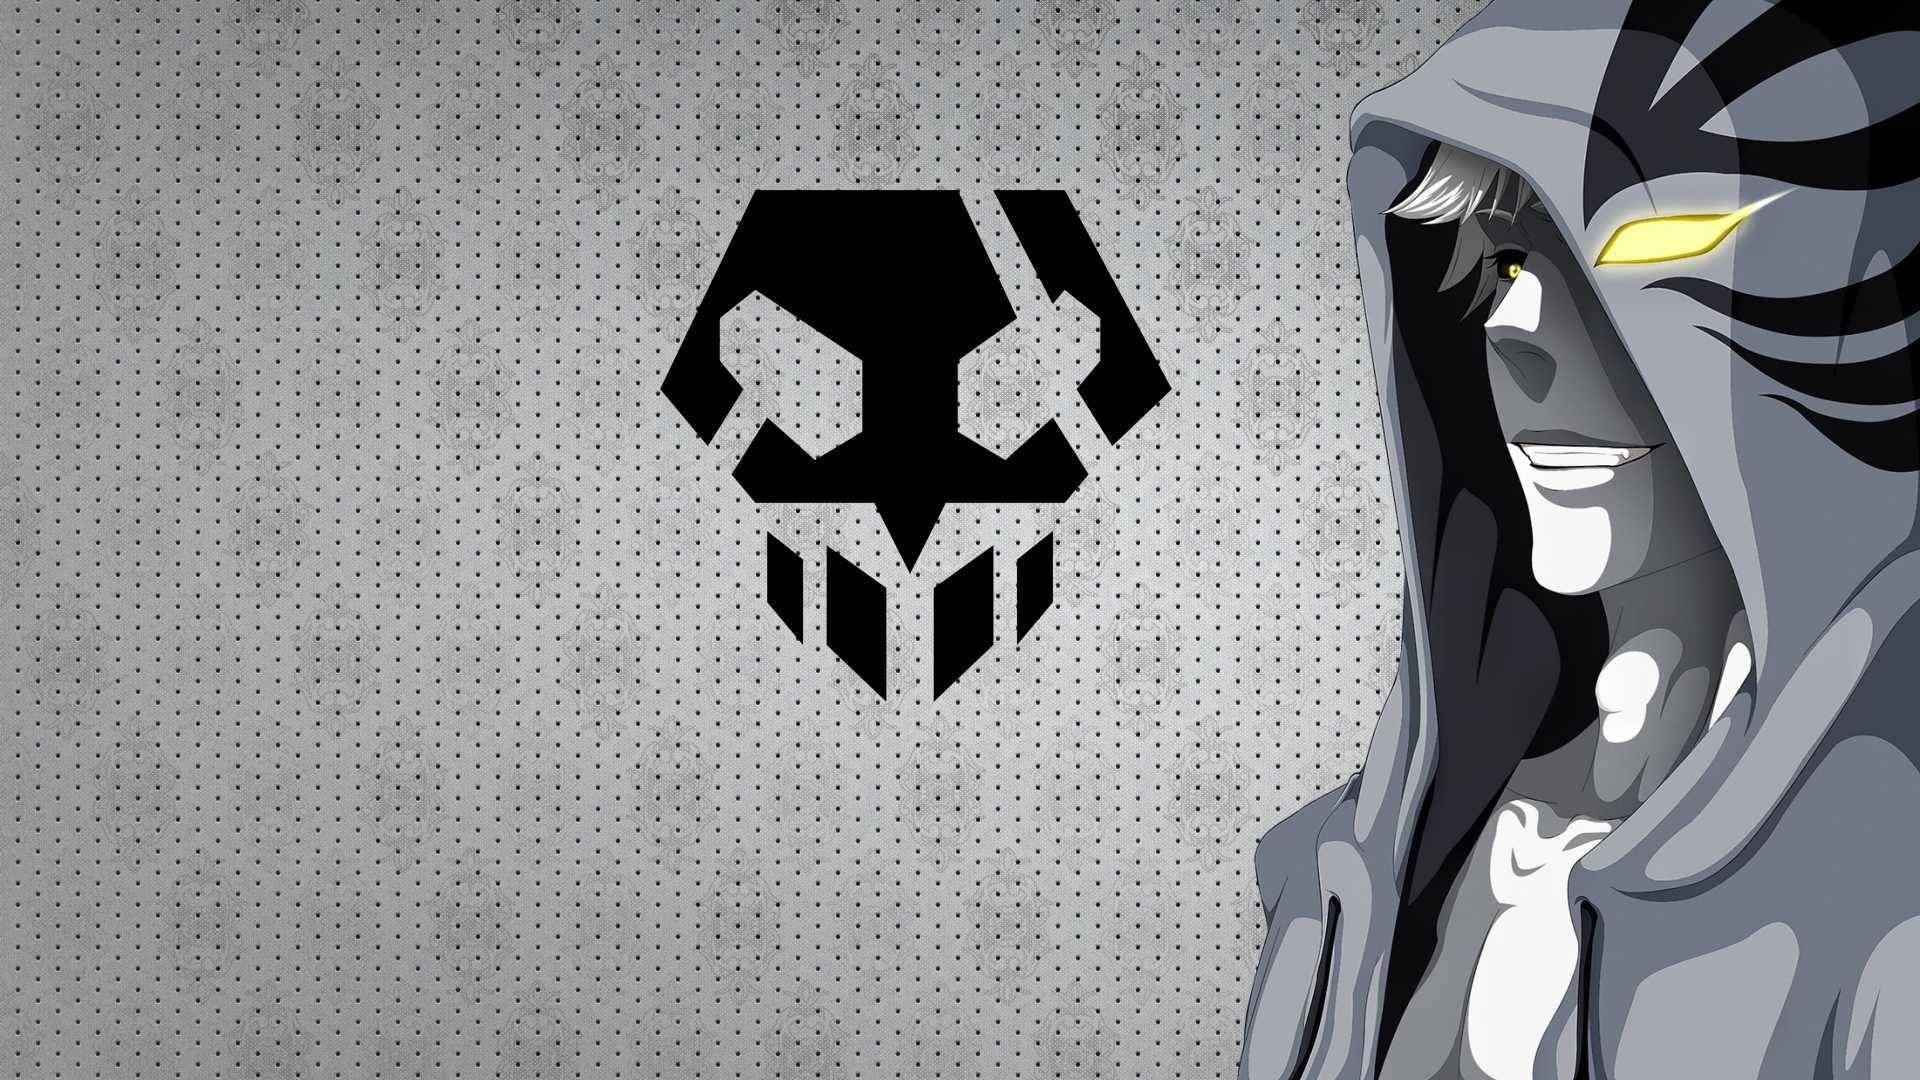 Unique Bleach Anime Iphone Collection Anime Wallpaper Hd Wallpaper